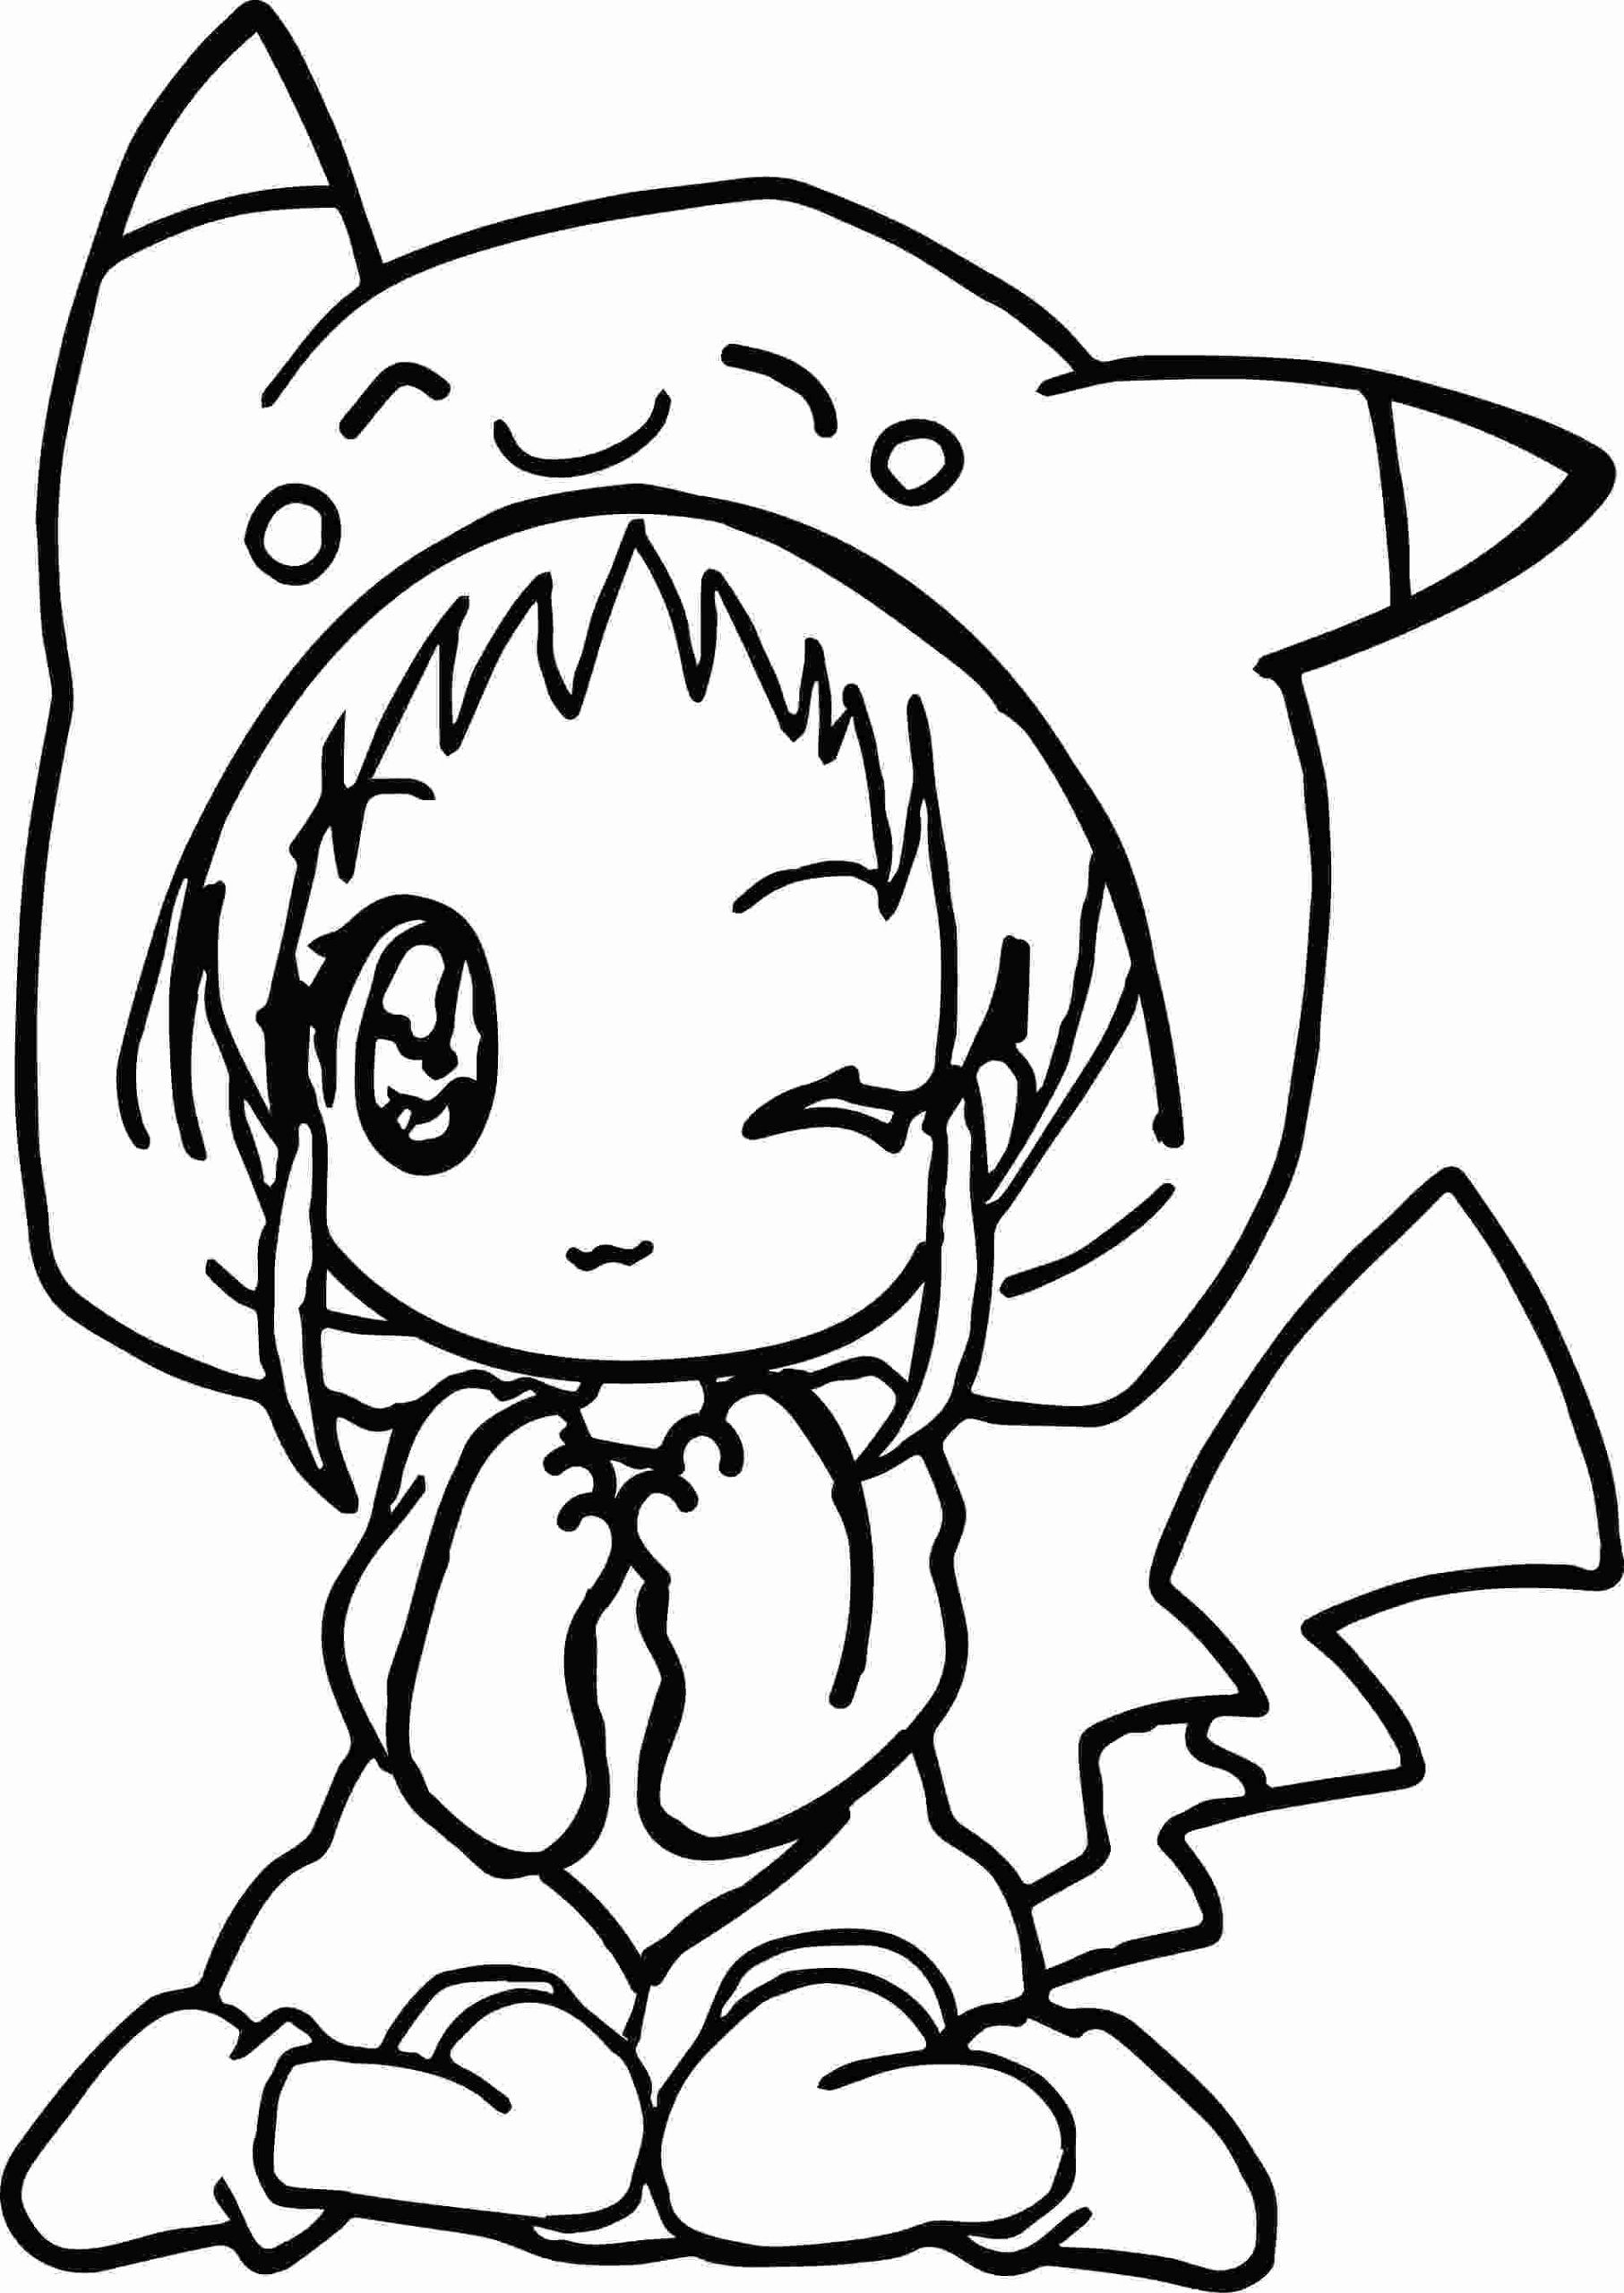 Simple Coloring Pages For Kids Fall In 2020 Unicorn Coloring Pages Pikachu Coloring Page Cute Coloring Pages